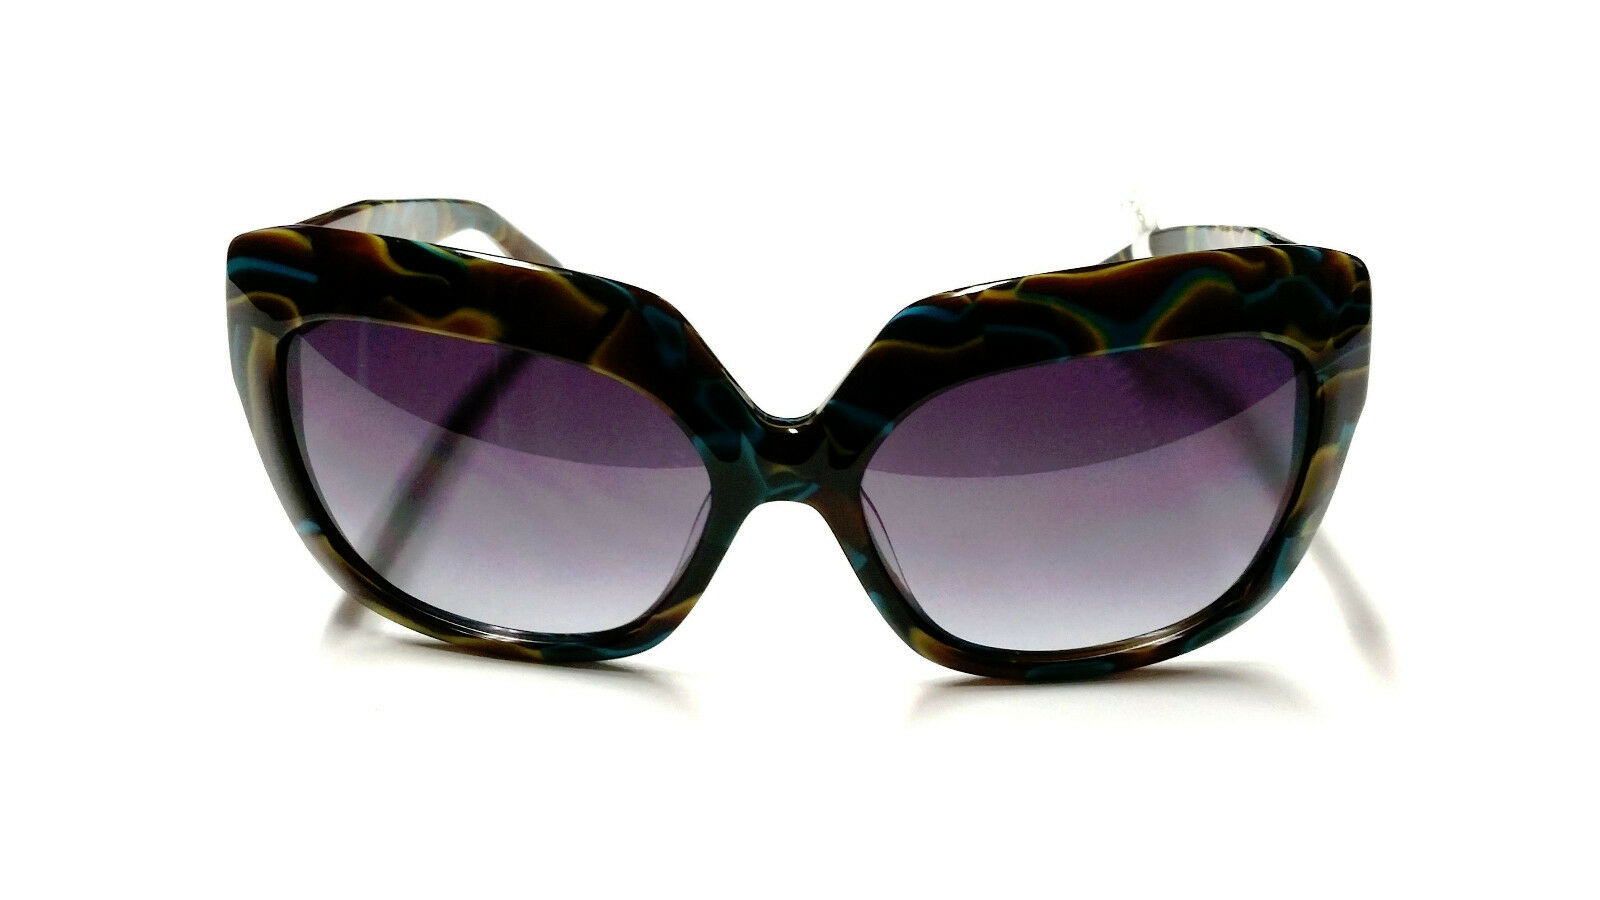 VON ZIPPER Donna POLY Sunglasses - Swirl marrone blu - NWT